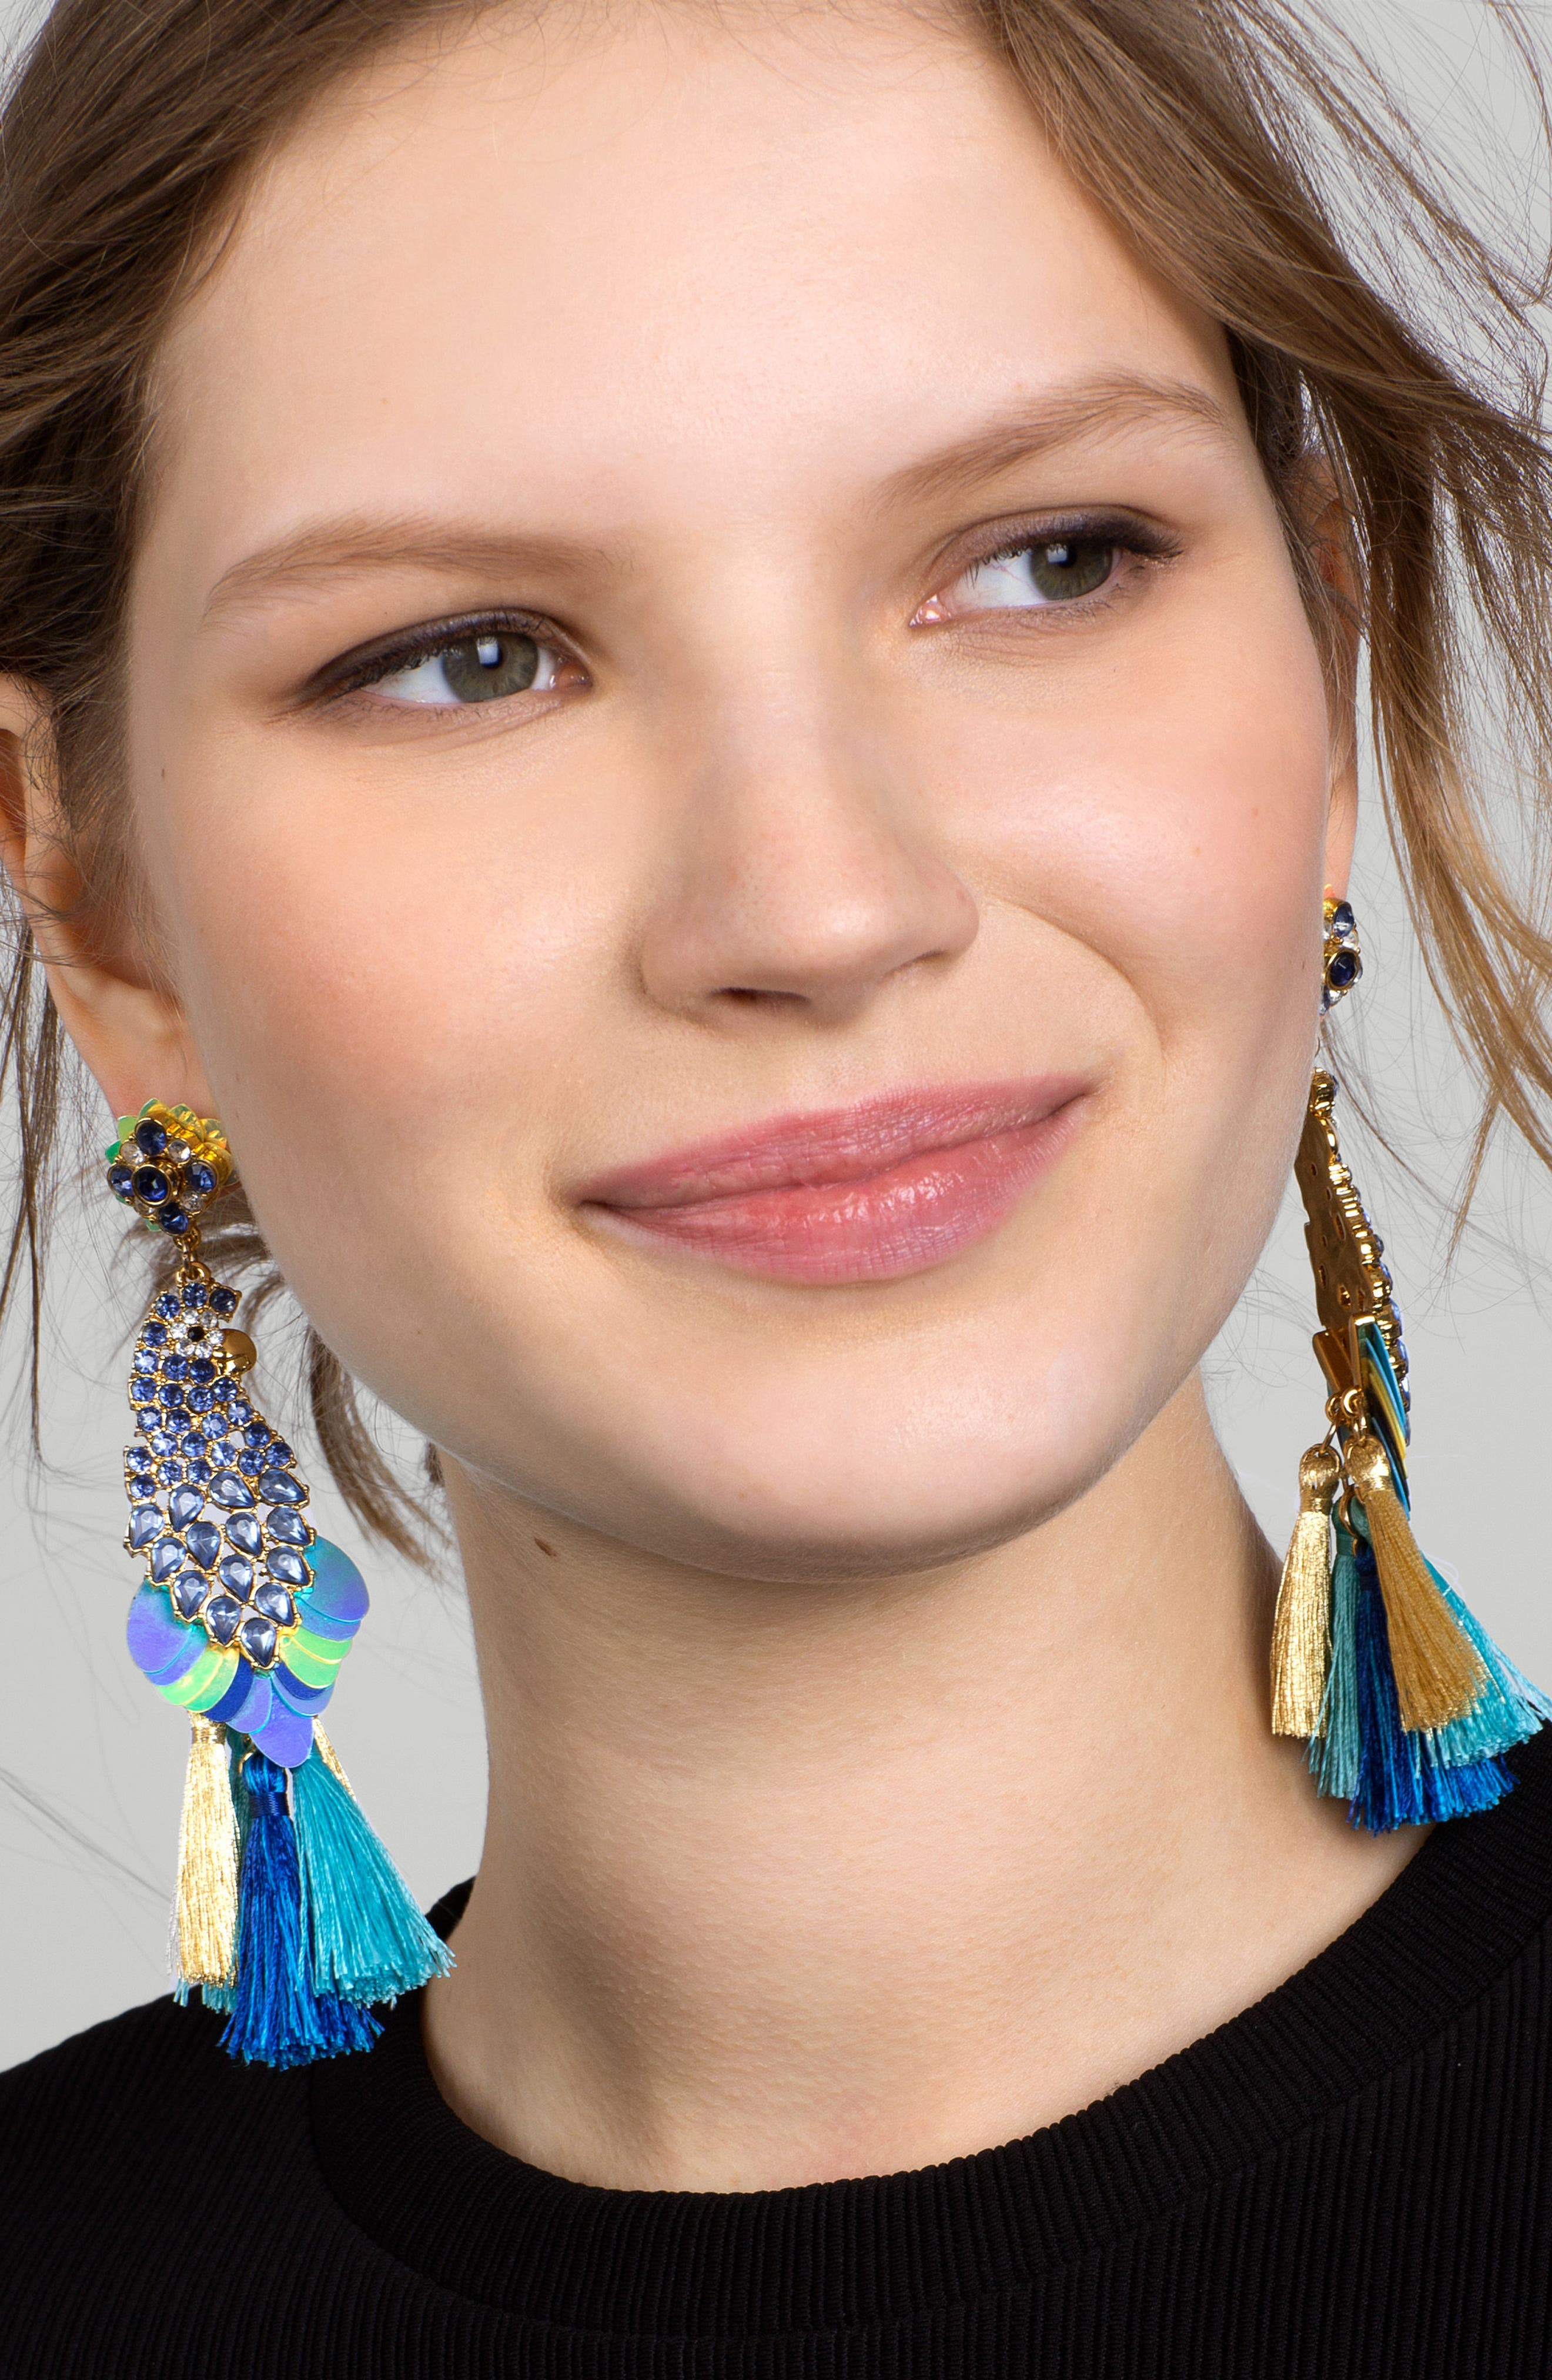 Macaw Statement Earrings,                             Alternate thumbnail 2, color,                             400